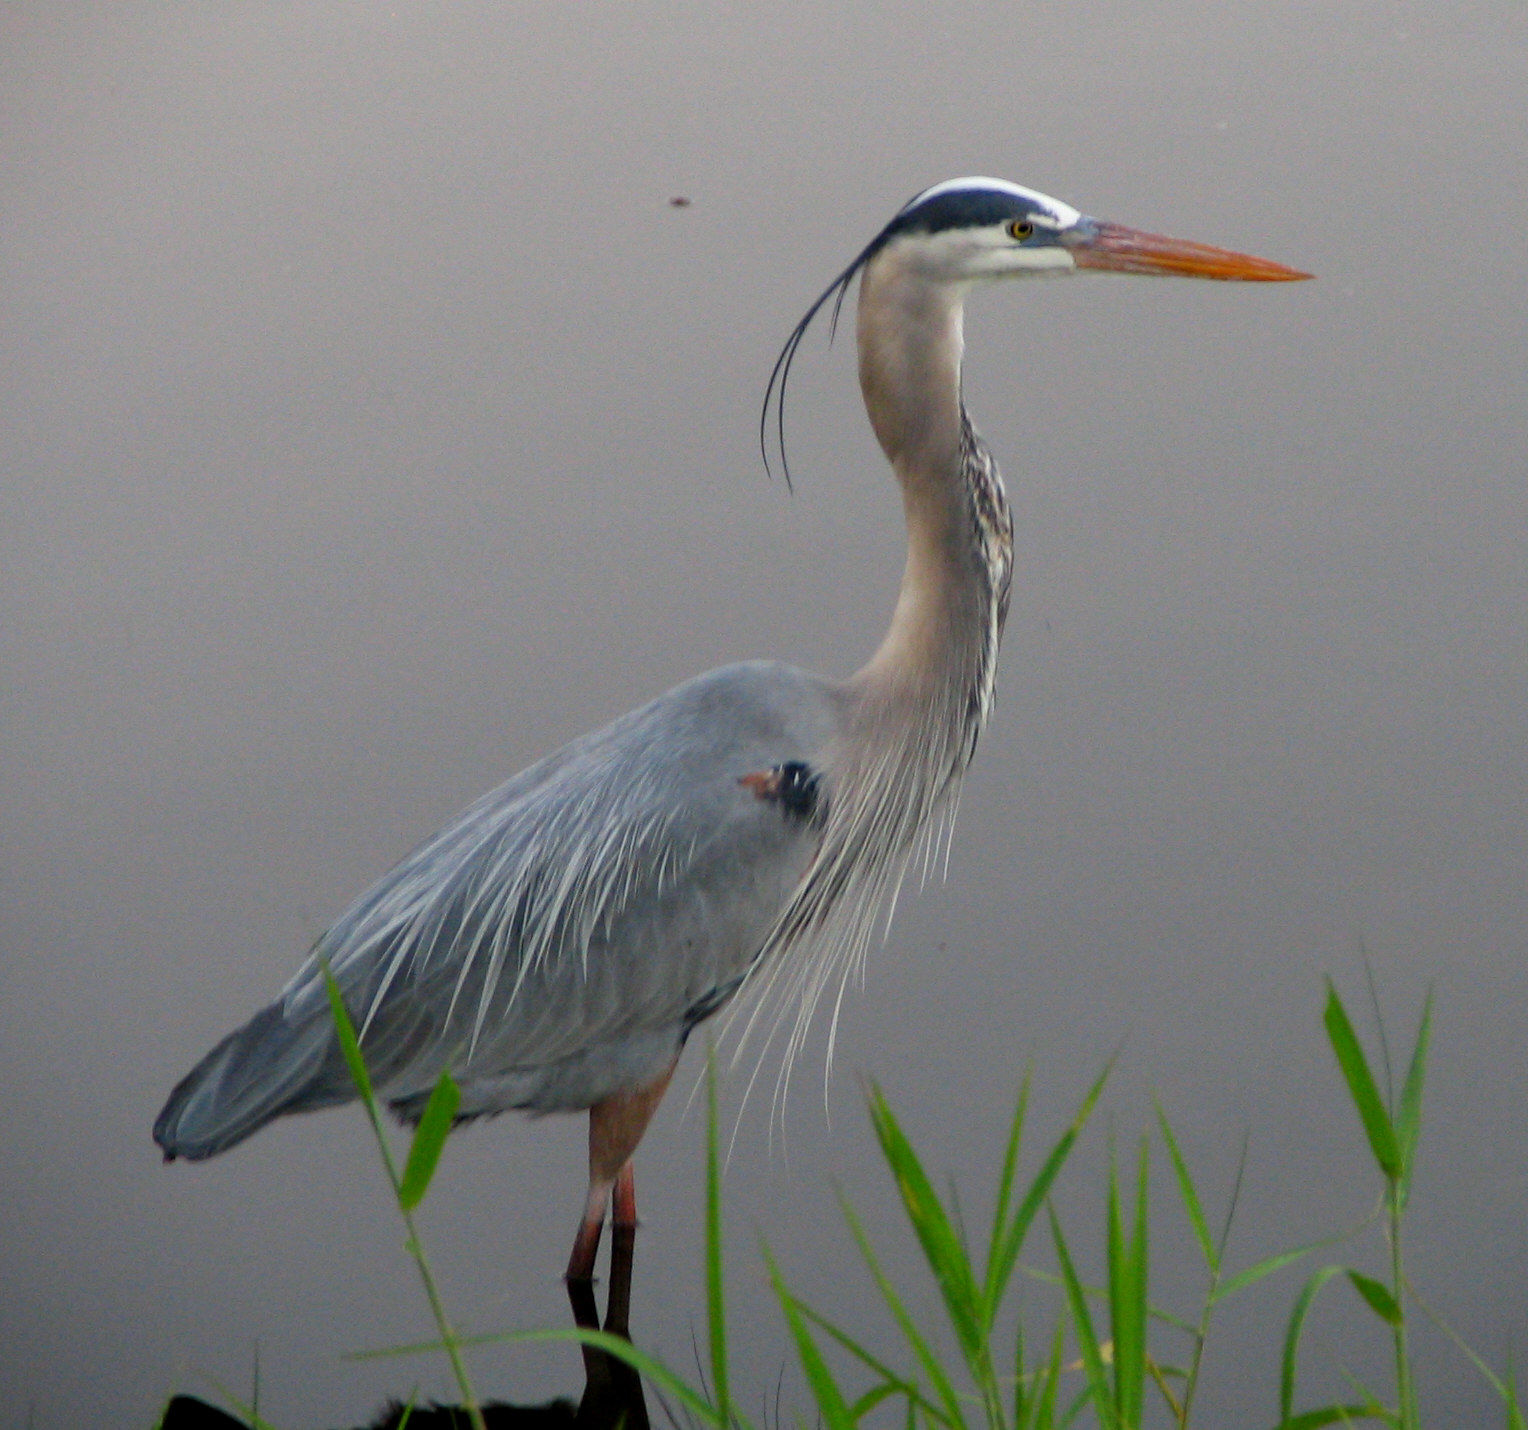 Palmer Lake is home to a  Great Blue Heron  that is frequently seen on the dams or lake shores.